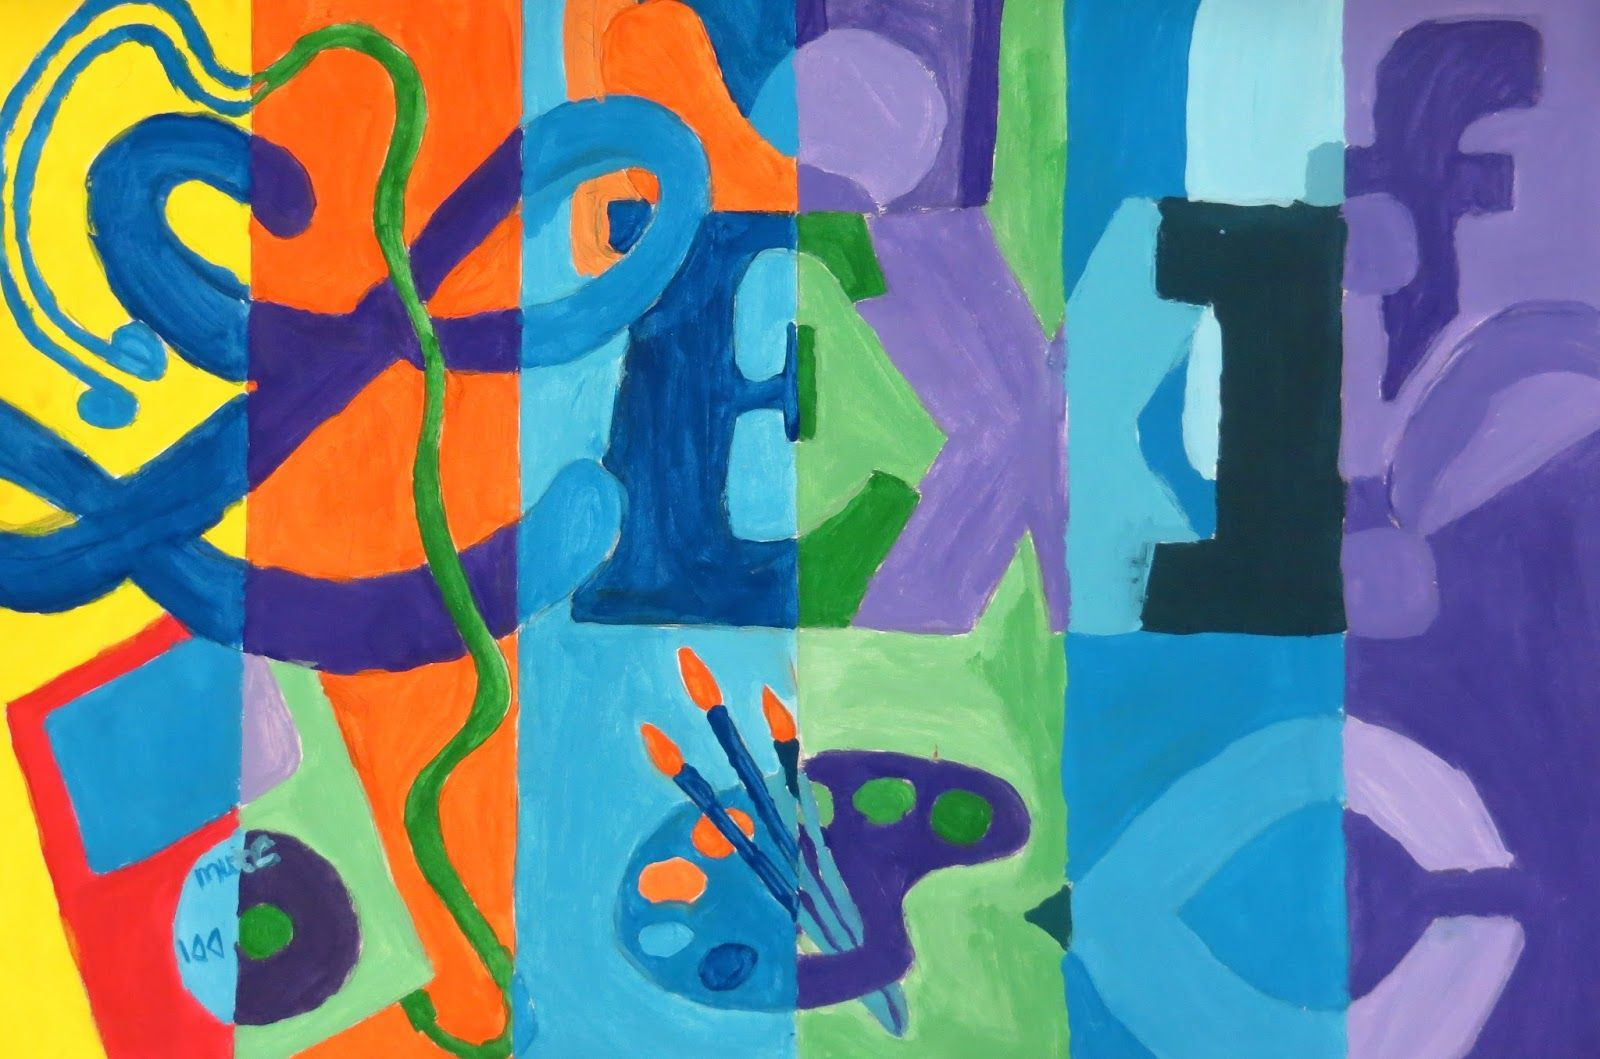 The Creative License Middle School Color Theory Painting